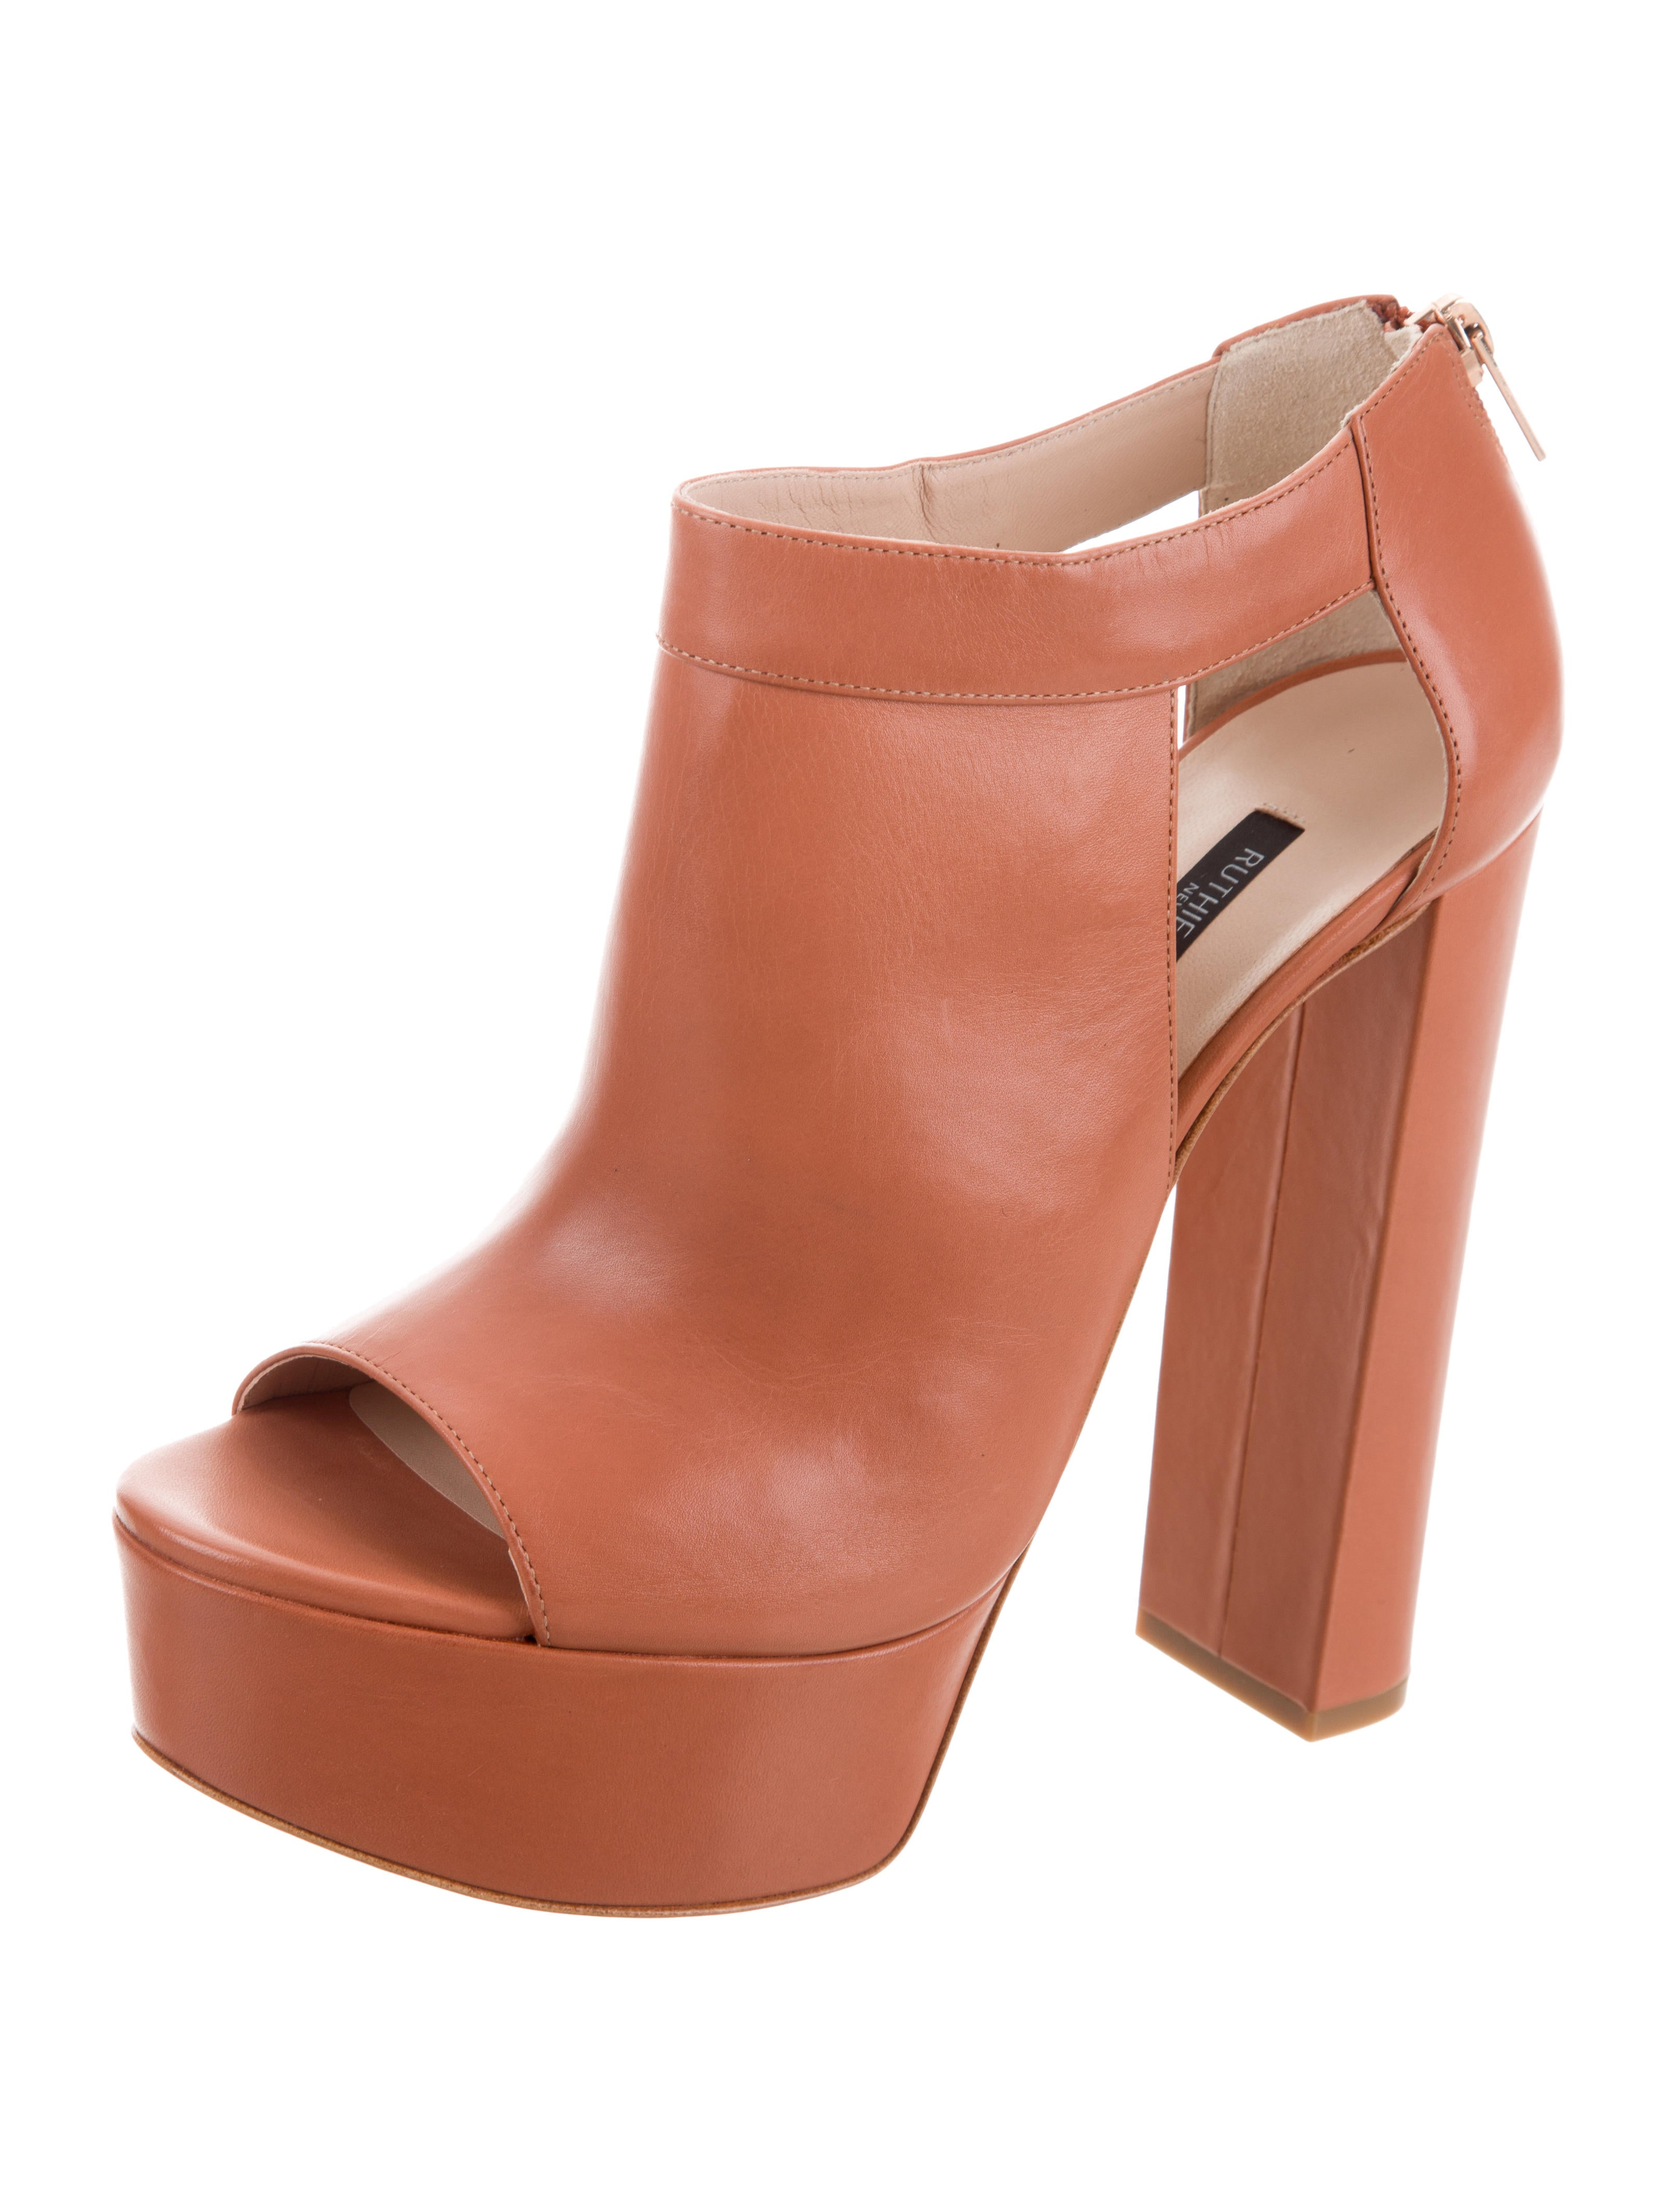 Ruthie Davis Campbell Platform Booties buy online outlet quality from china cheap outlet latest collections discount clearance store store with big discount 7vxVOKh